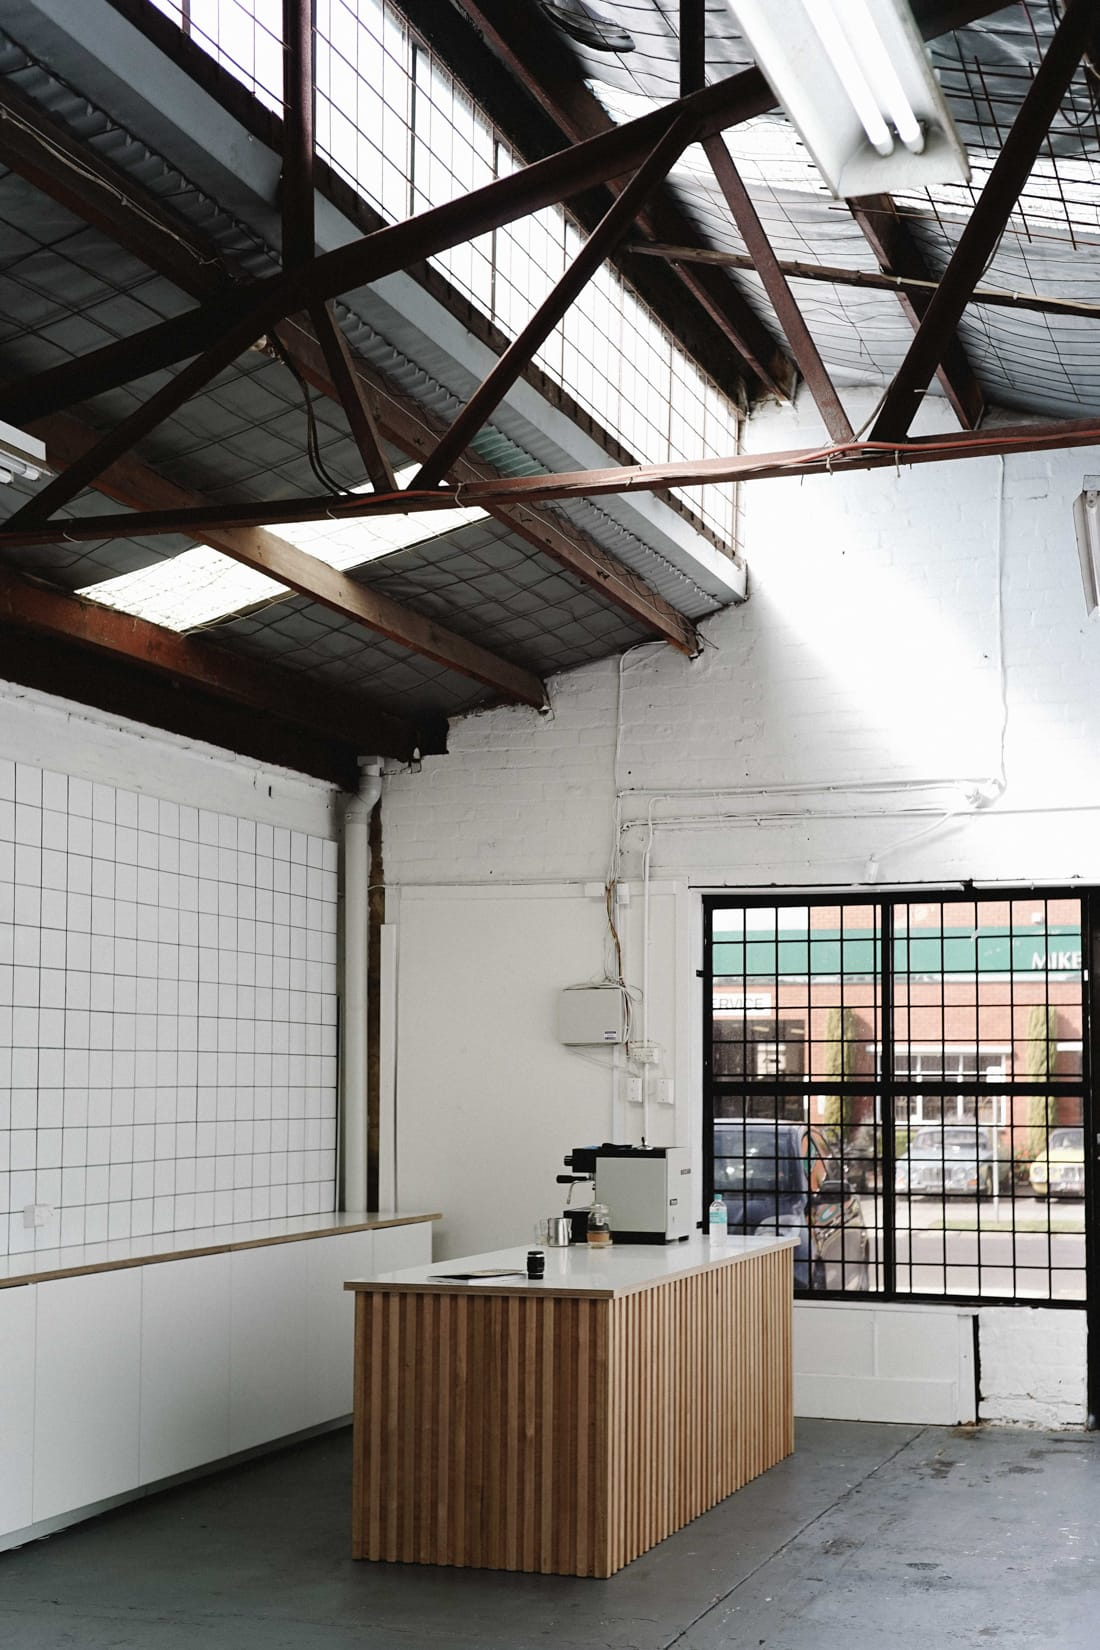 Entrance to the Aark Collective studio in Melbourne, Australia